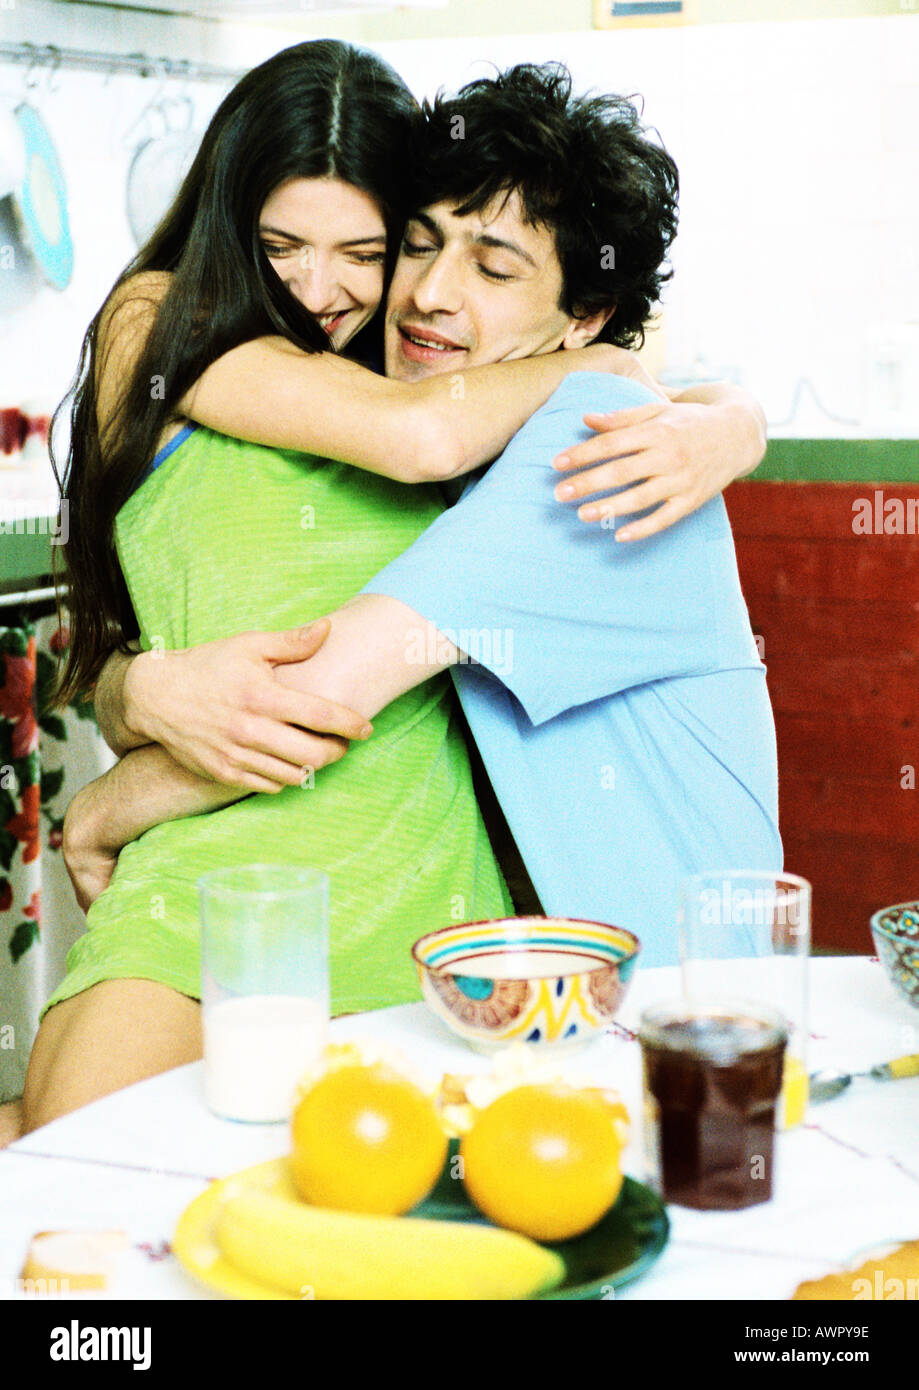 Couple hugging in front of breakfast table, portrait. Stock Photo